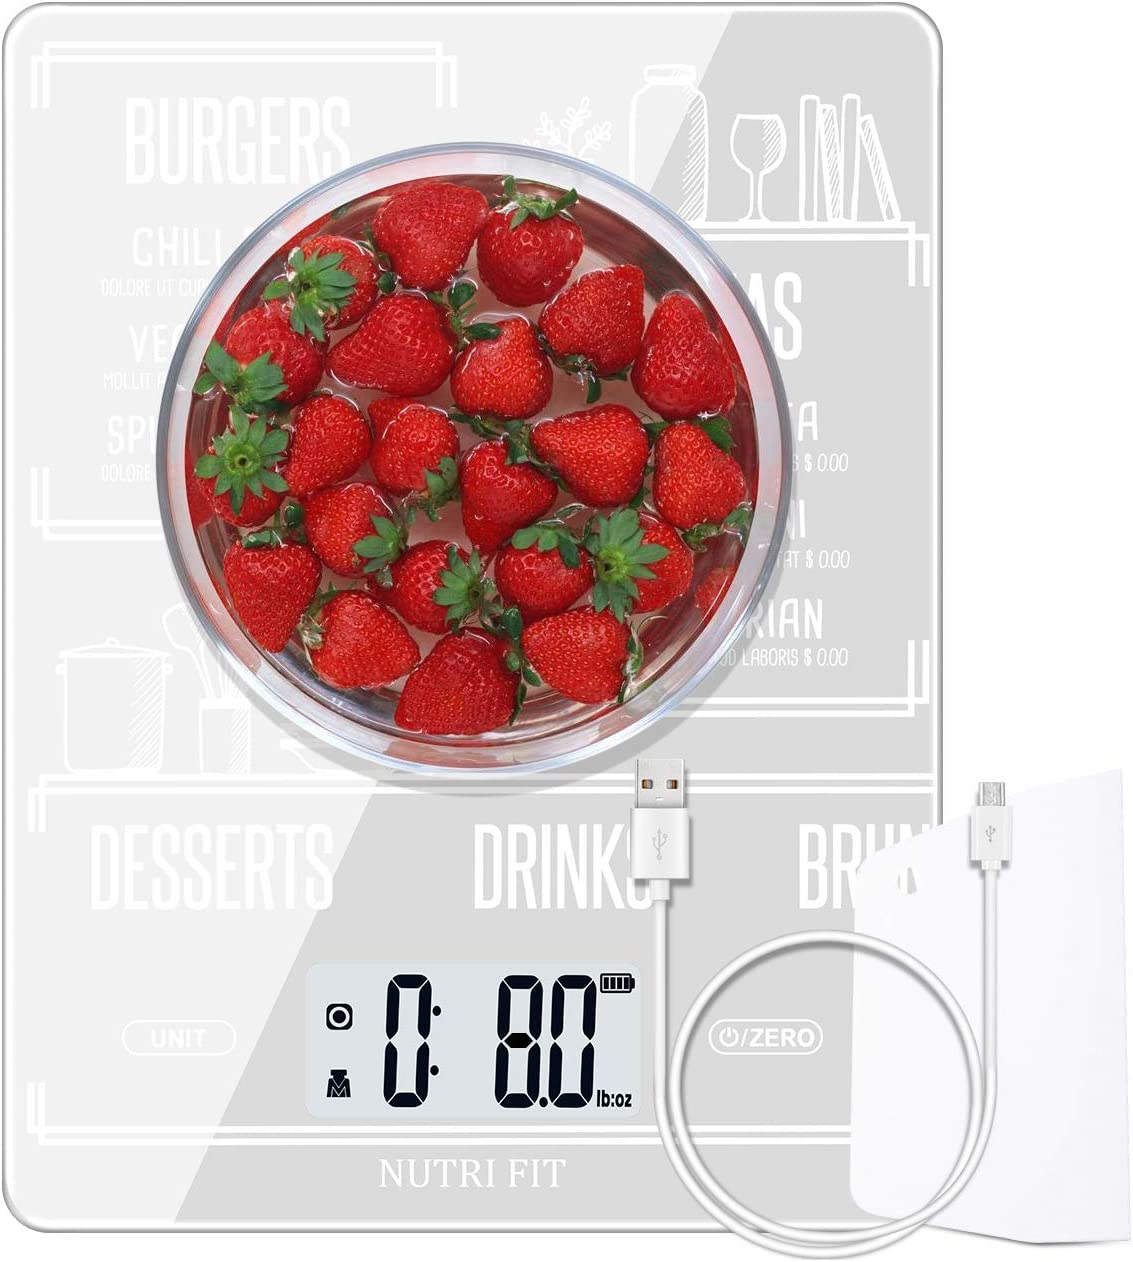 Rechargeable Food Scale Digital Kitchen Scale Multifunction with Dough Scraper by NUTRI FIT, High Accuracy, Portable and Tare Function, 11lb/5kg Baking & Cooking Scale, White